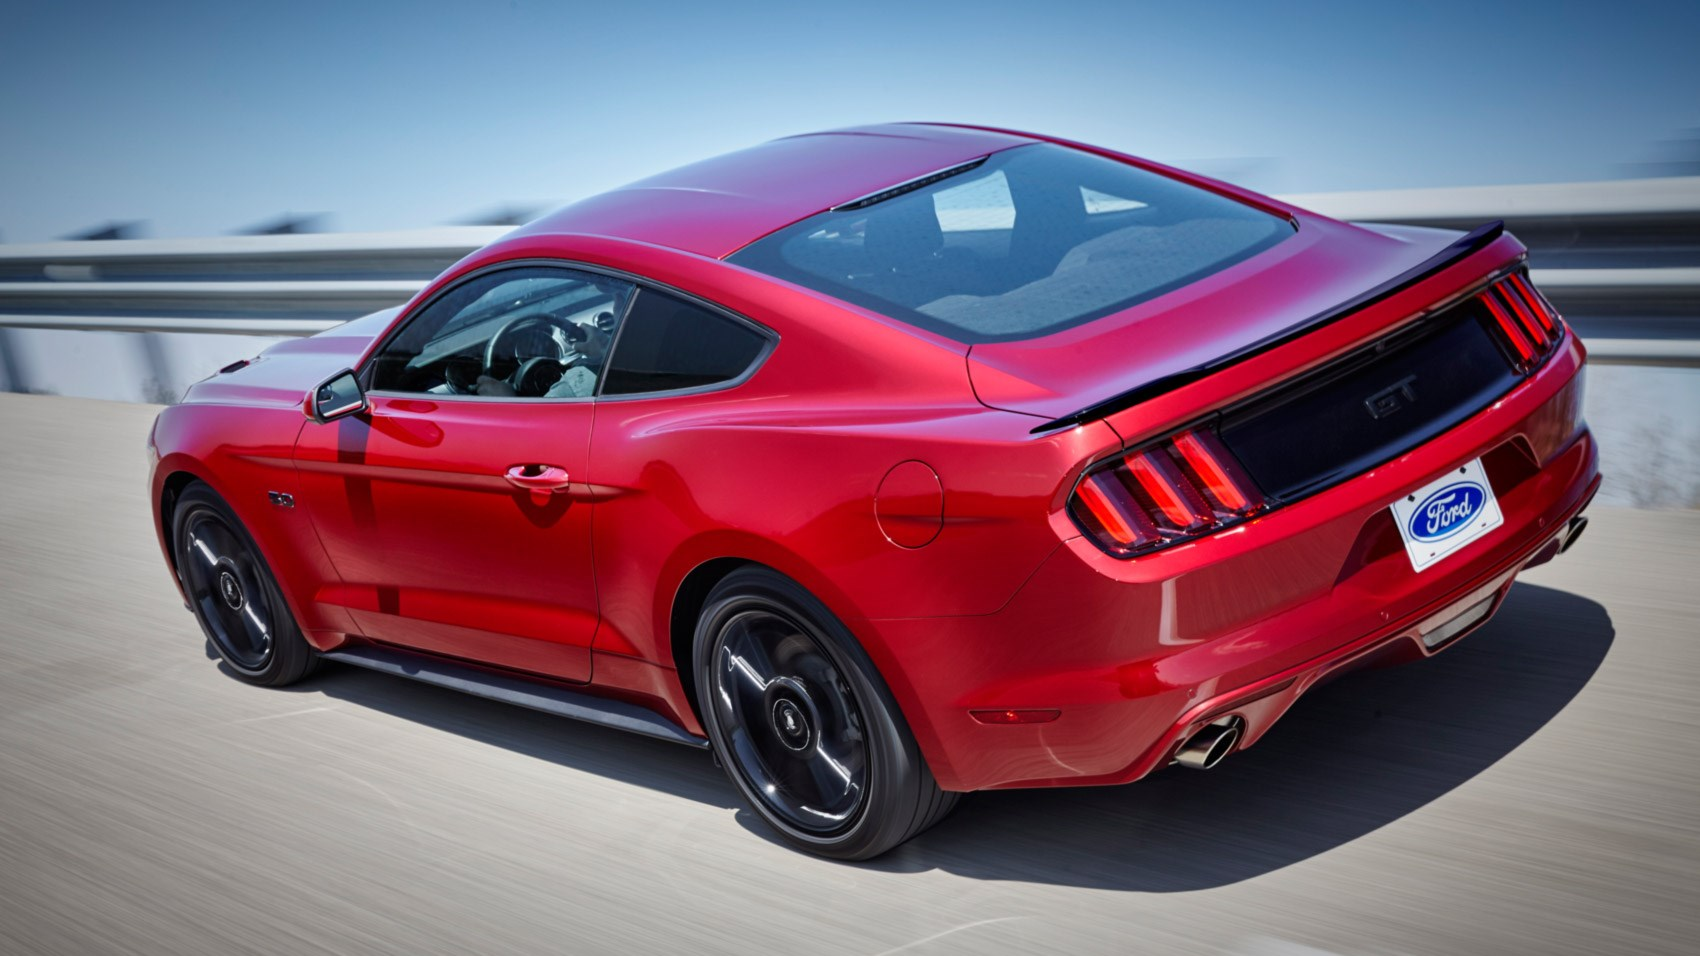 Ford Mustang Lease >> Ford Mustang 5.0 V8 GT (2016) review | CAR Magazine